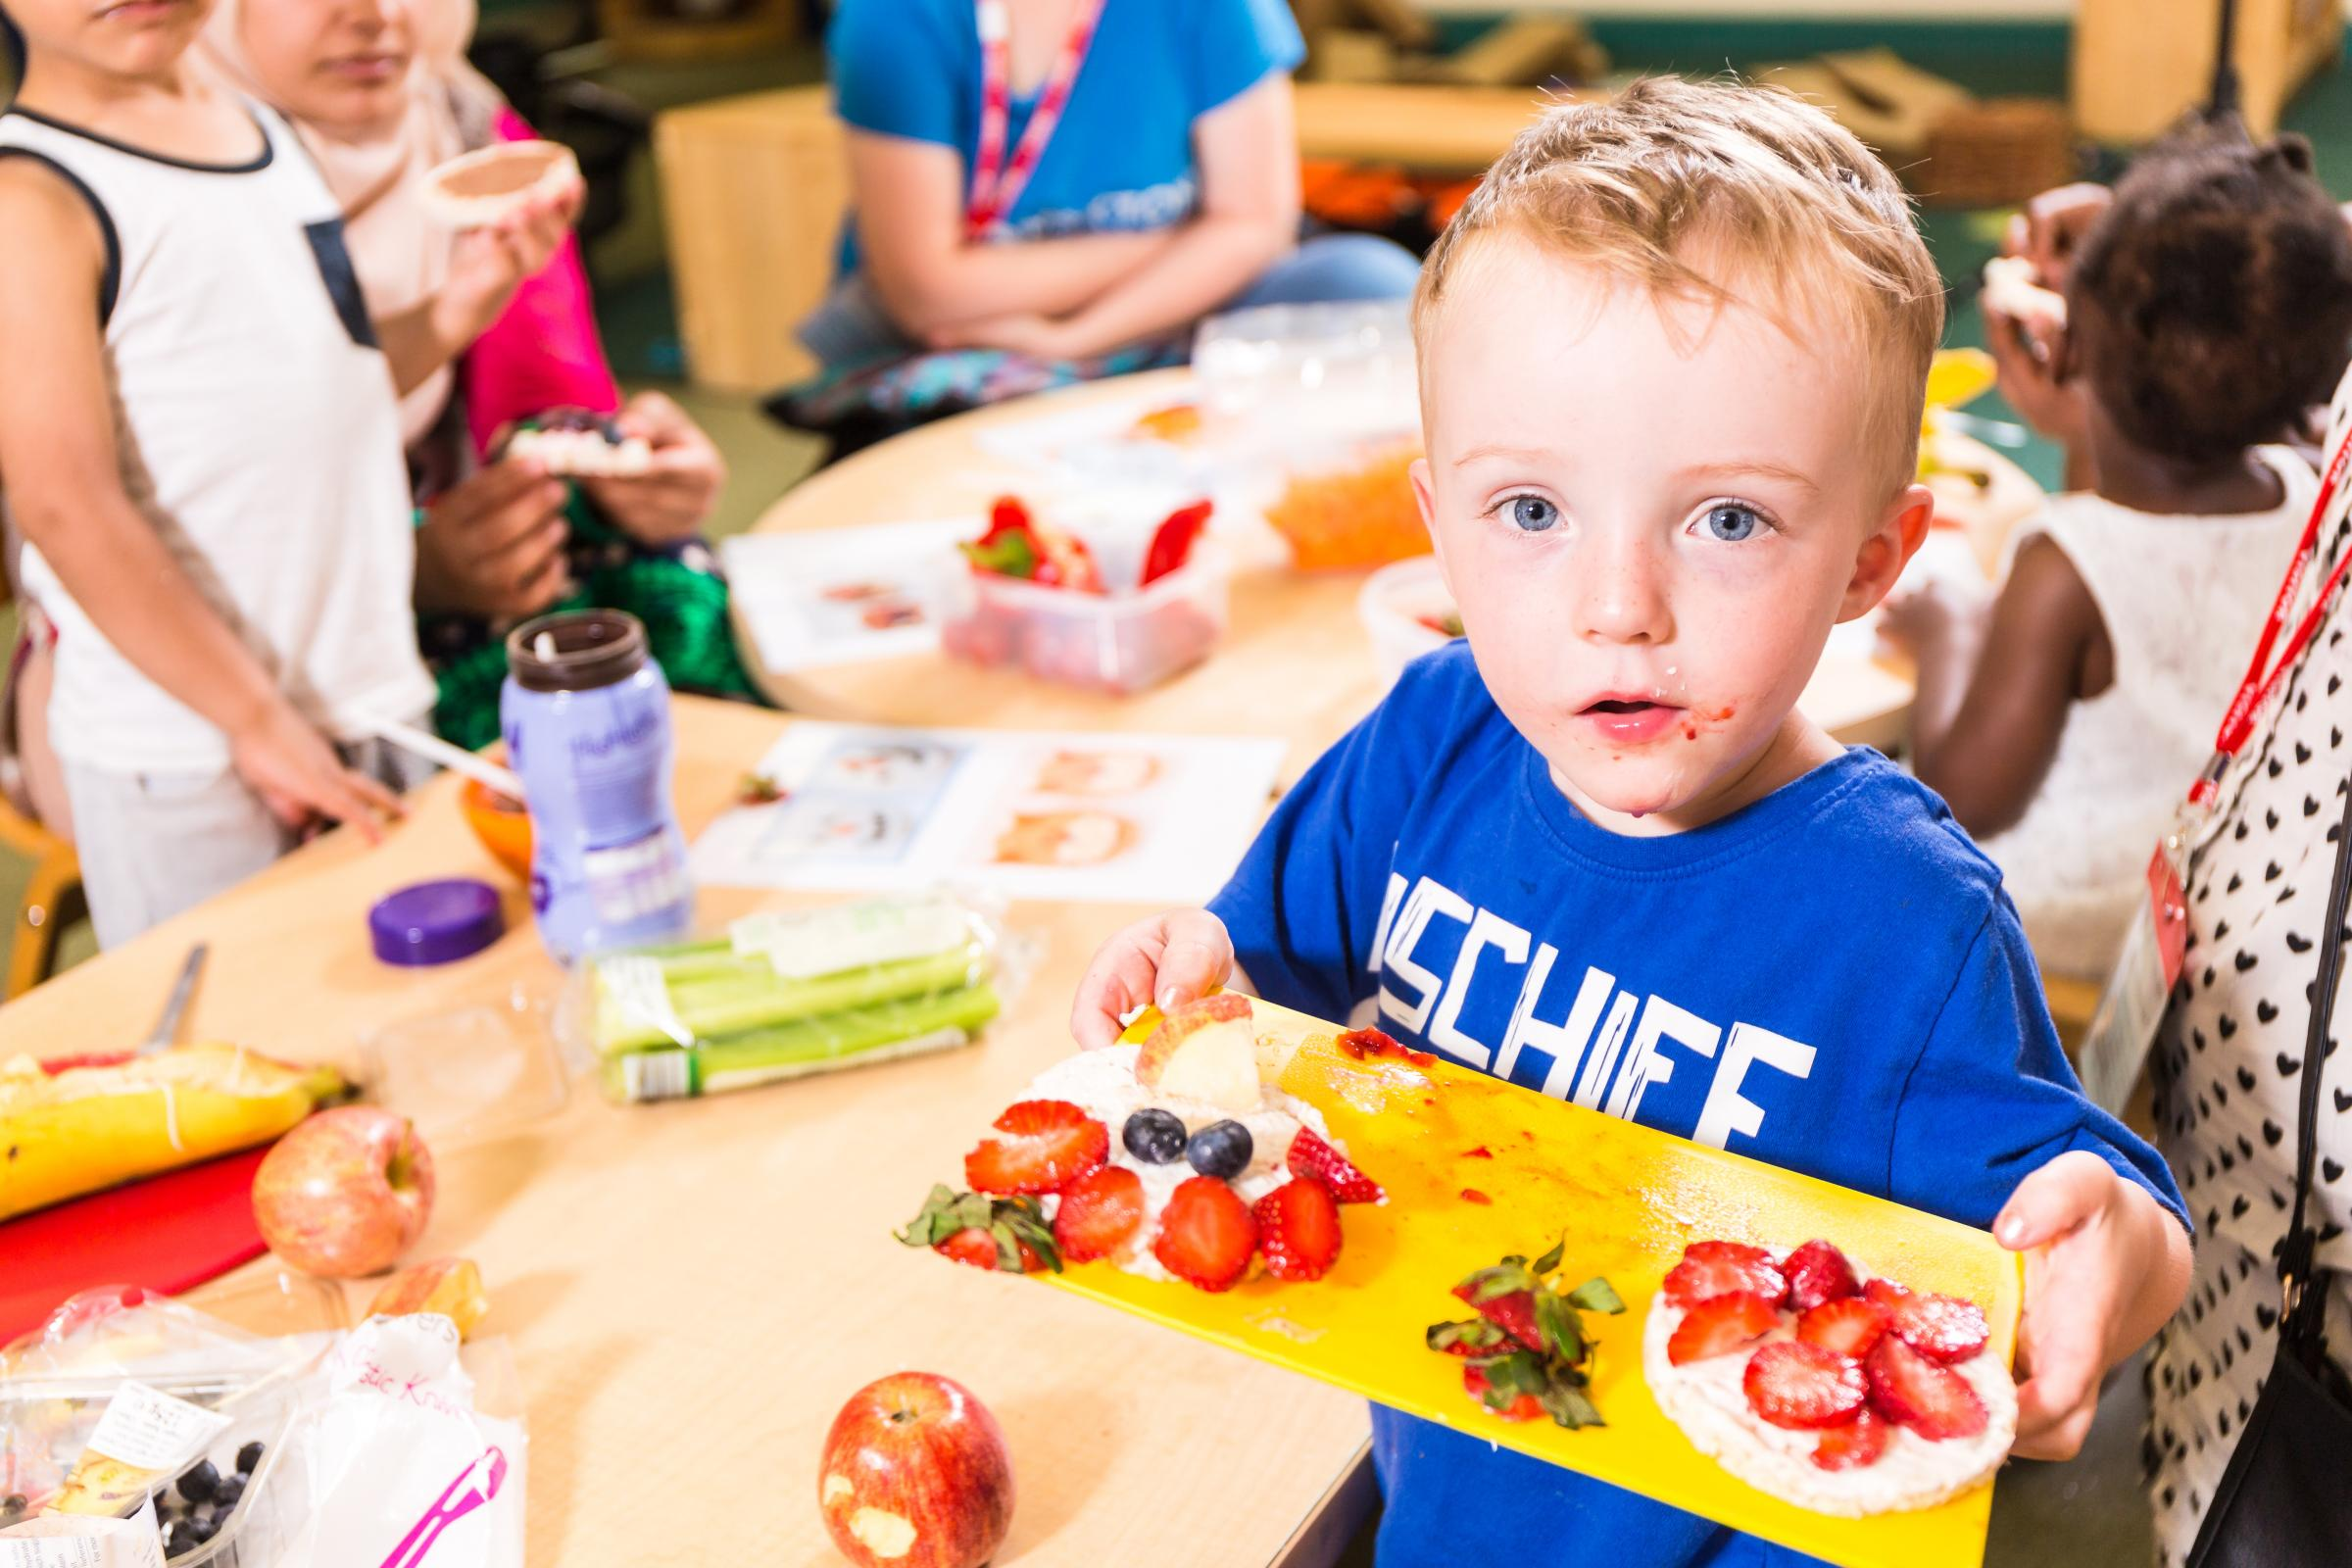 The Dishy Dads scheme, which helps fathers prepare nutritious meals with their children, is being supported with funding by Better Start Bradford